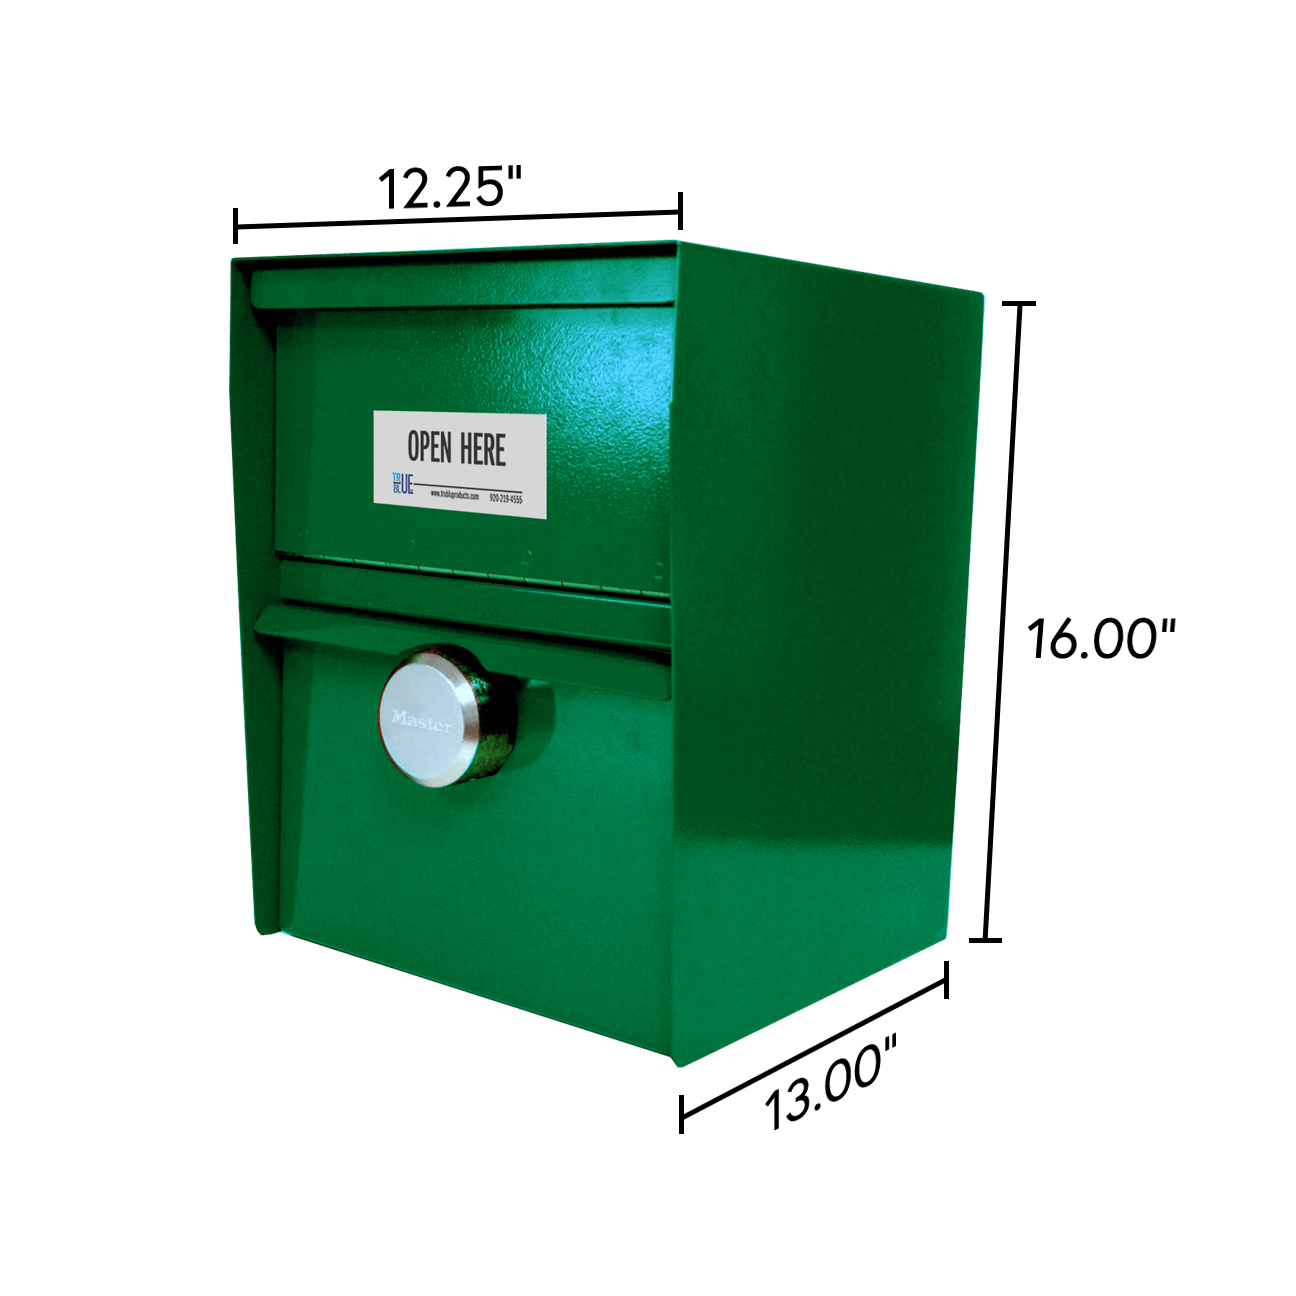 Unmanned Secure Locking Drop Box with Dimensions